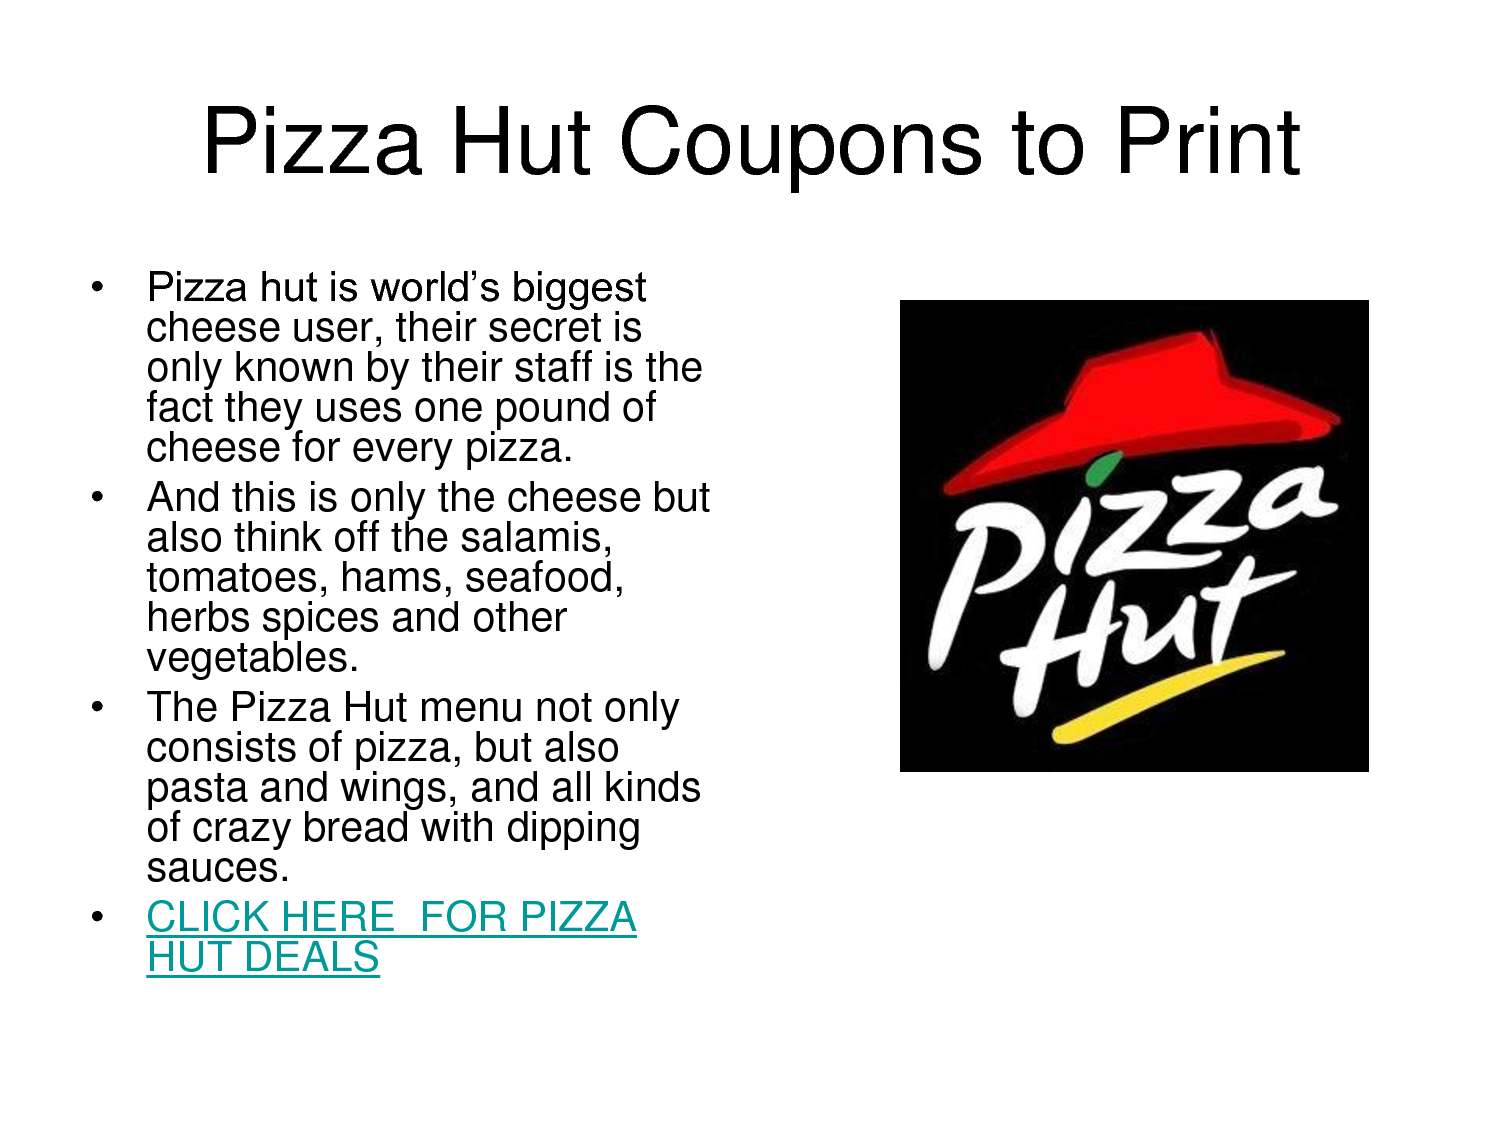 All Active Pizza Hut Coupon Codes & Coupons - Up To 50% off in December With more than 12, restaurants in about countries, Pizza Hut is a force to be reckoned with. Order online if you are looking for fast pizza delivery and enjoy some tasty .